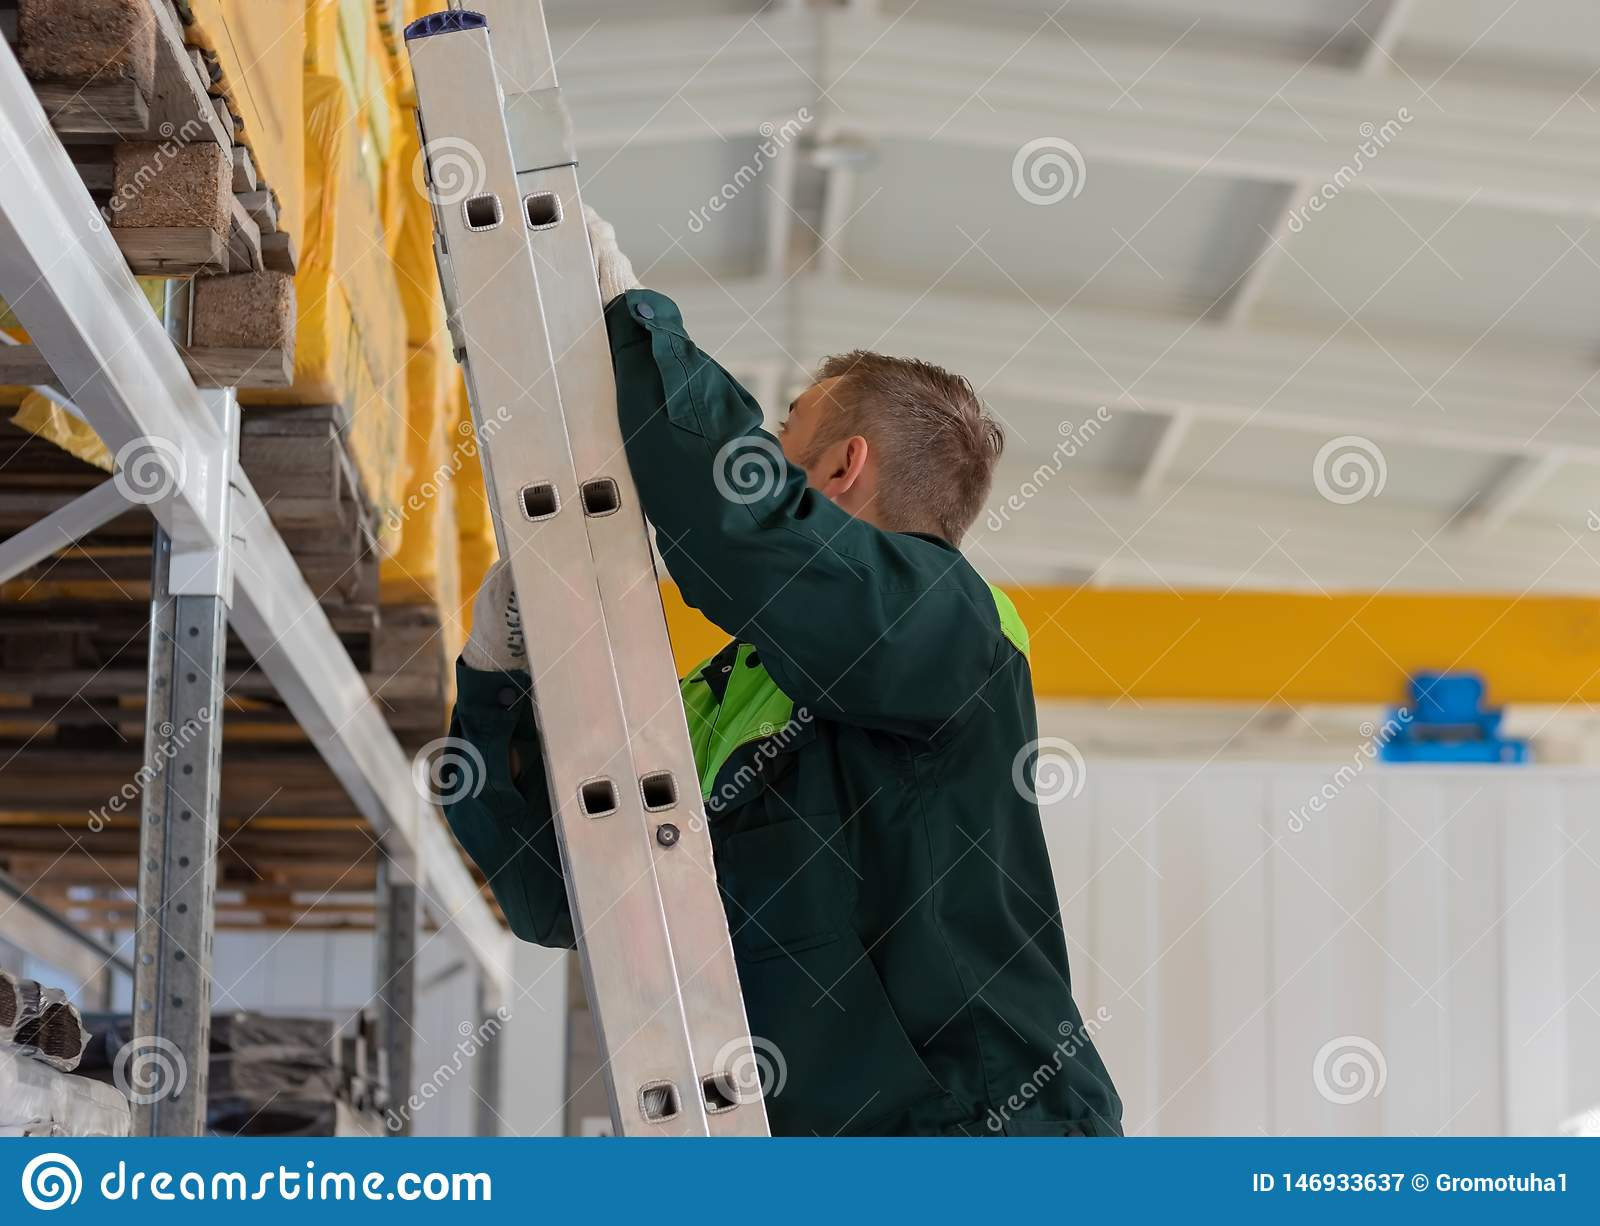 Working in the warehouse up the stairs